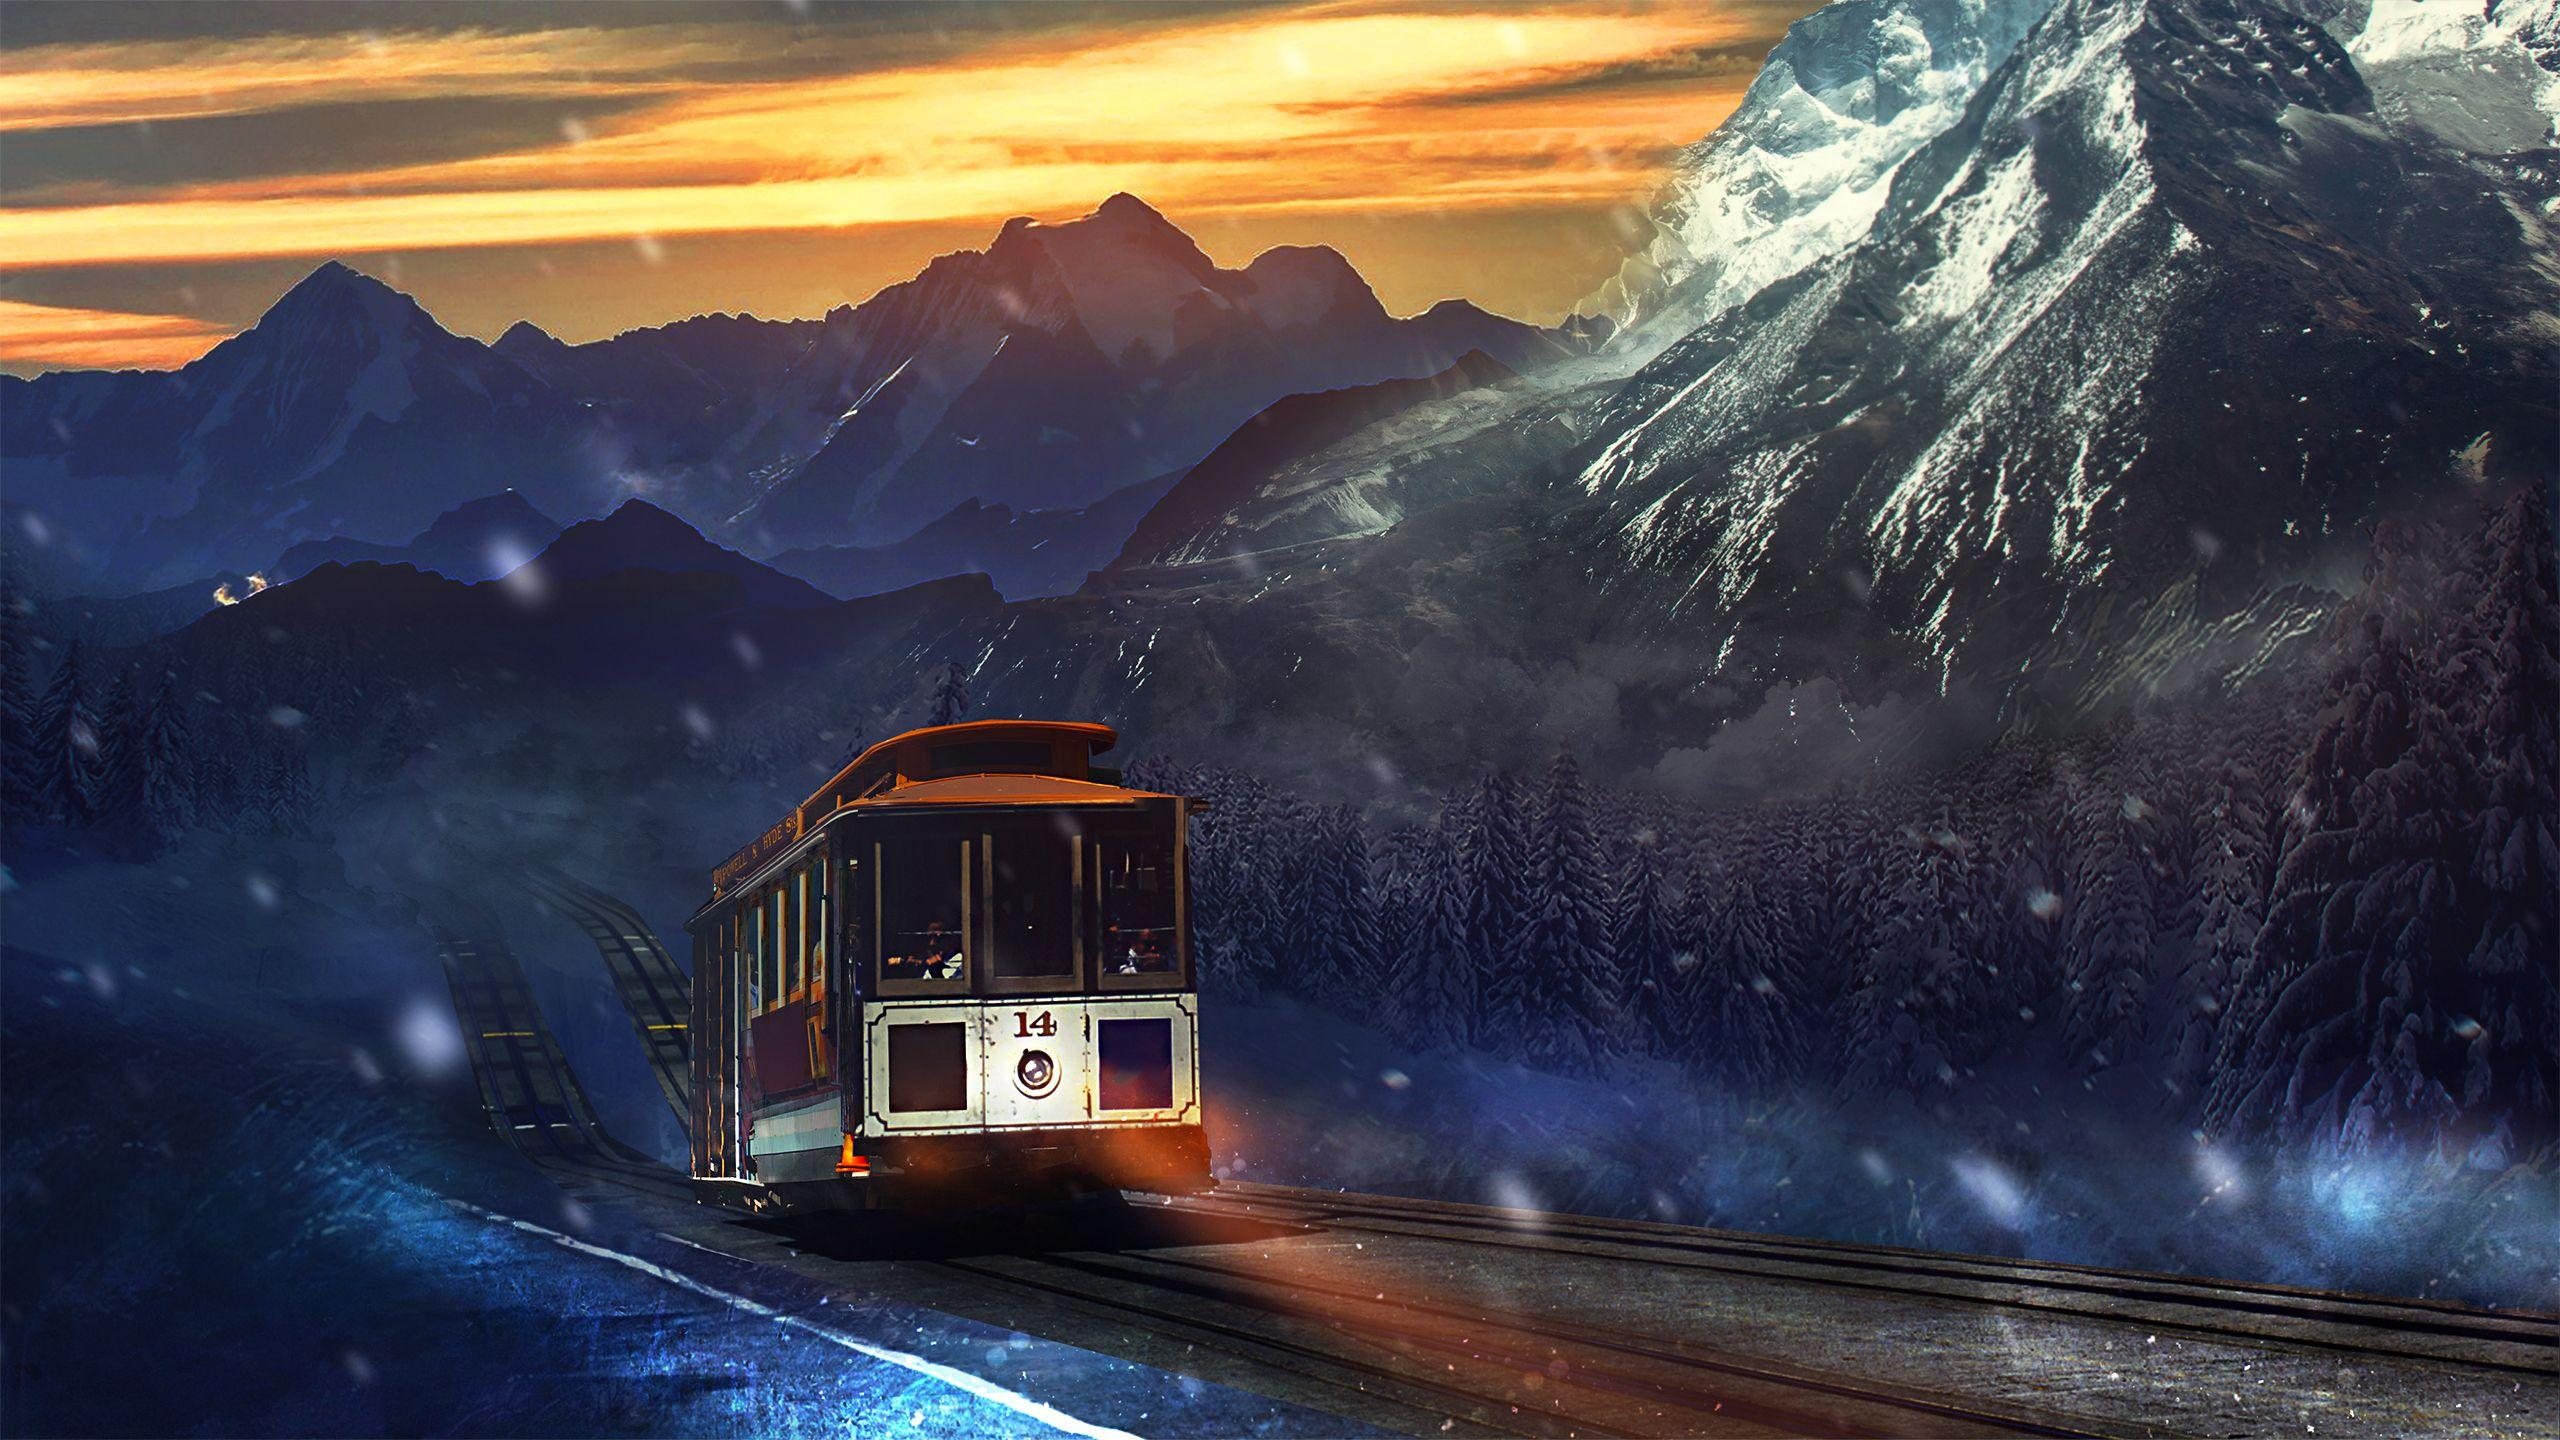 Train Journey Mountains Wallpapers